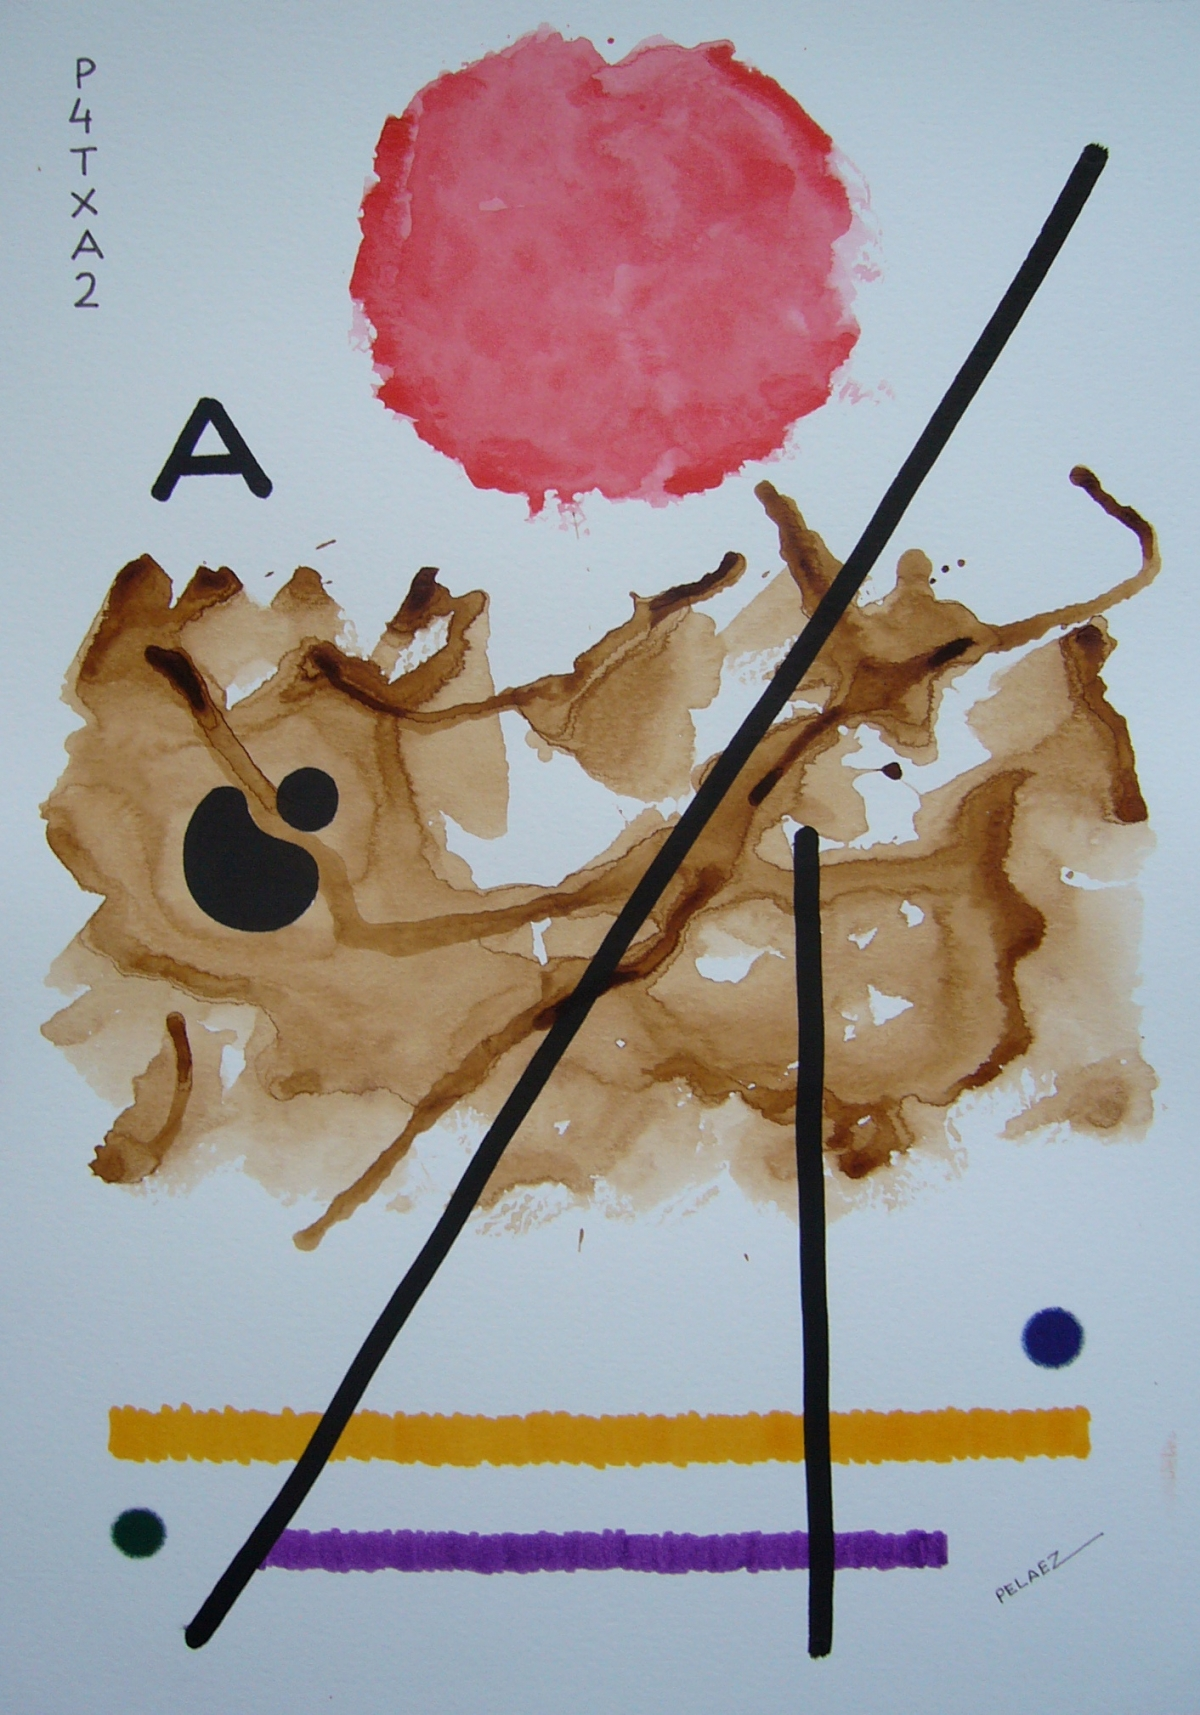 ABSTRACT PAINTING-A